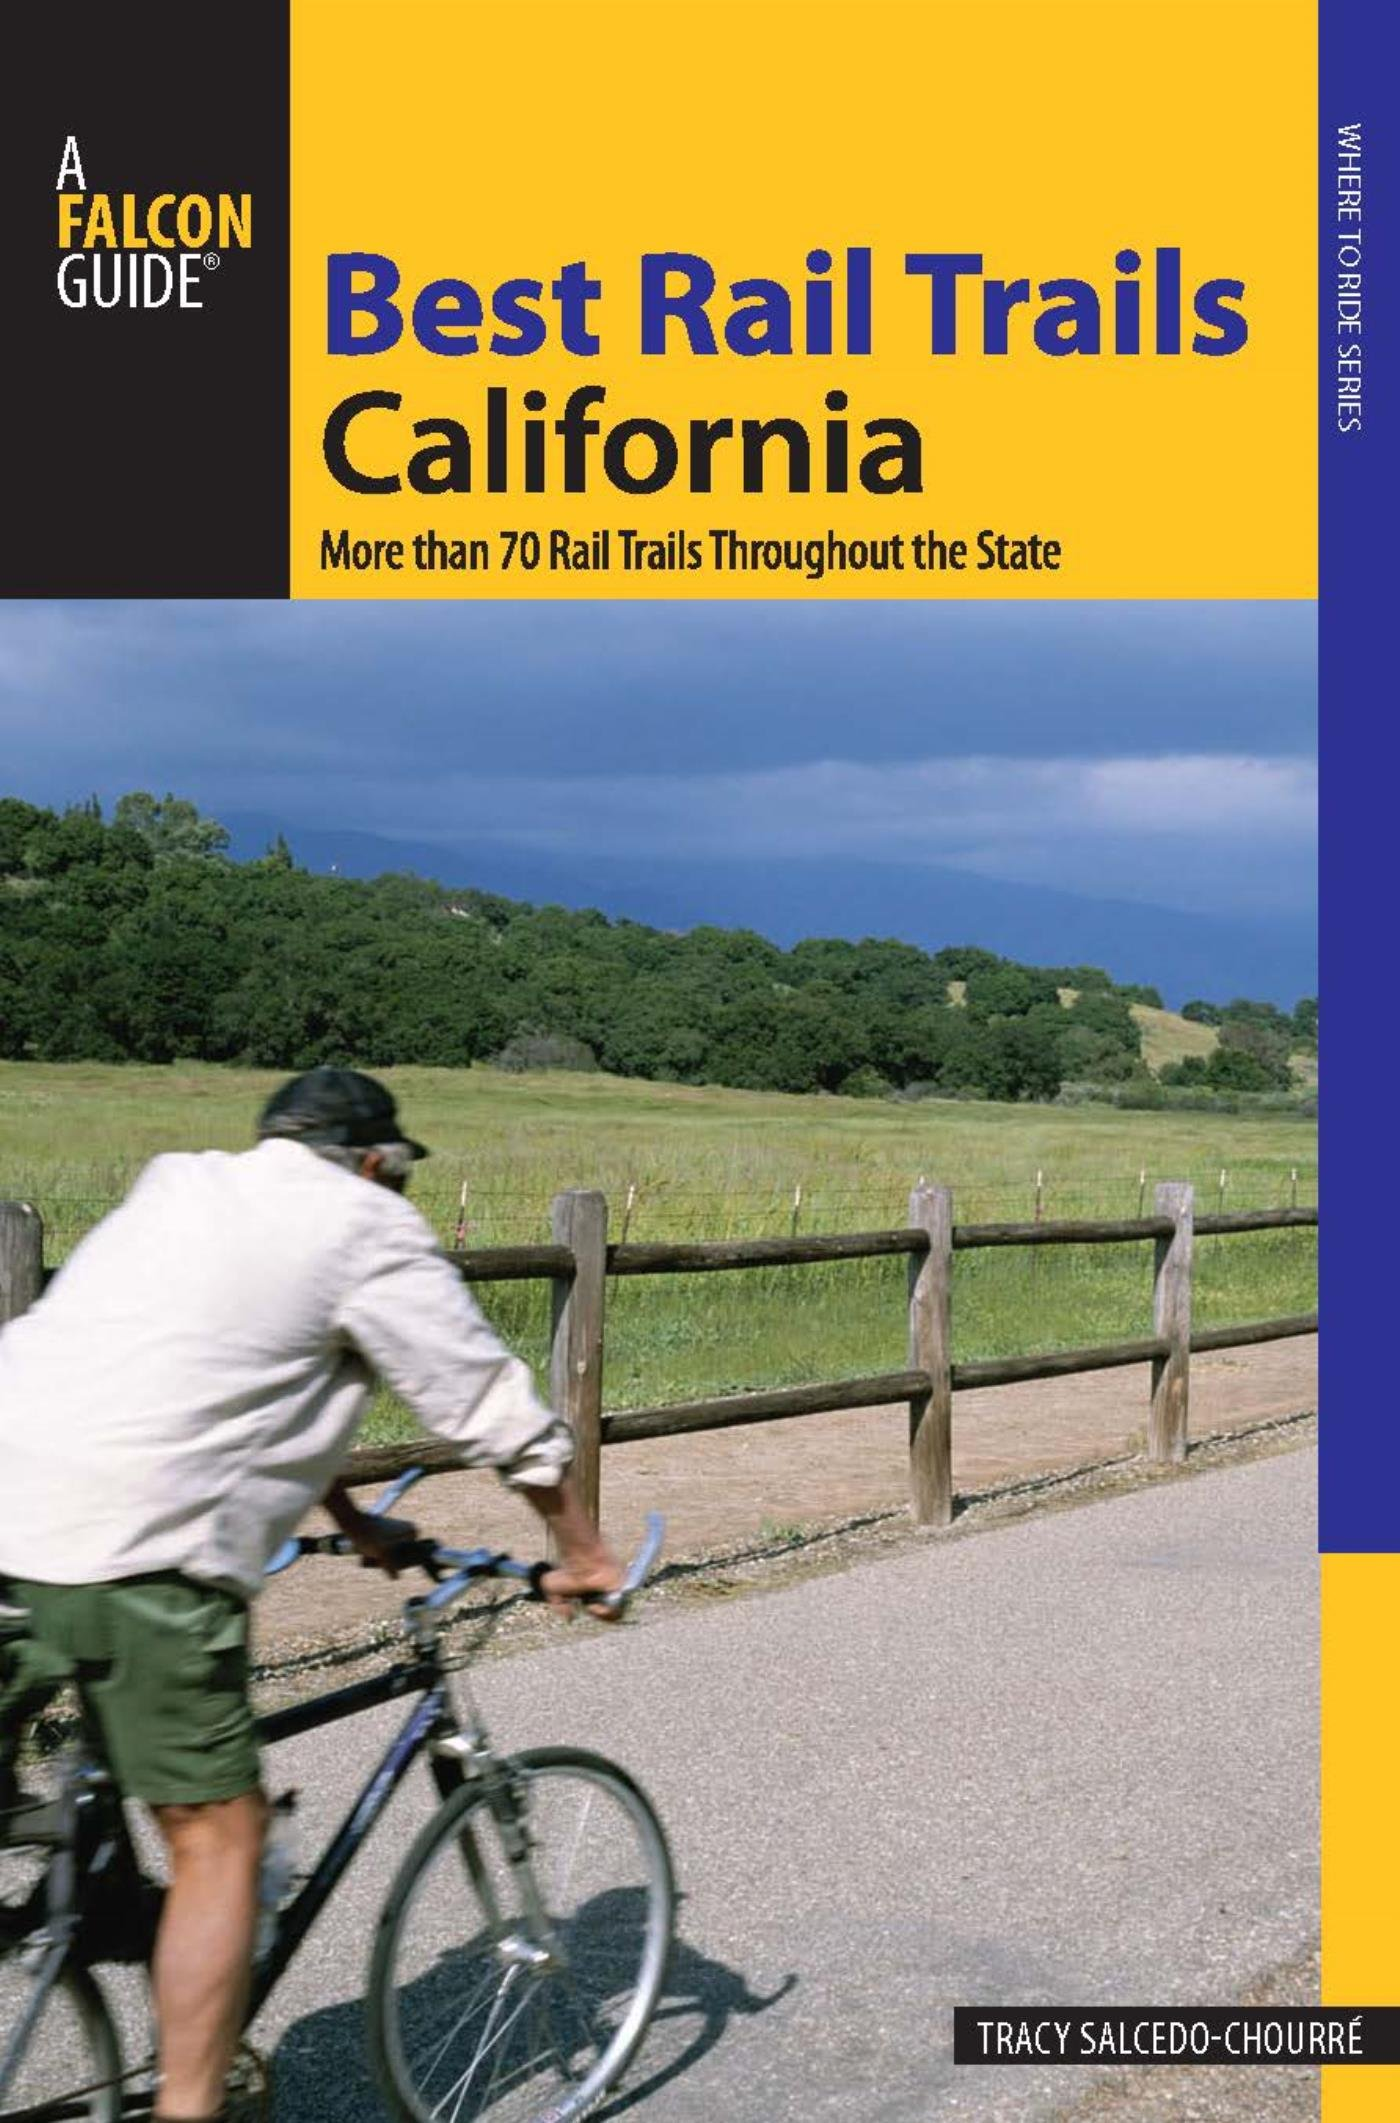 Best Rail Trails California: More Than 70 Rail Trails Throughout the State (Best Rail Trails Series) (English Edition)